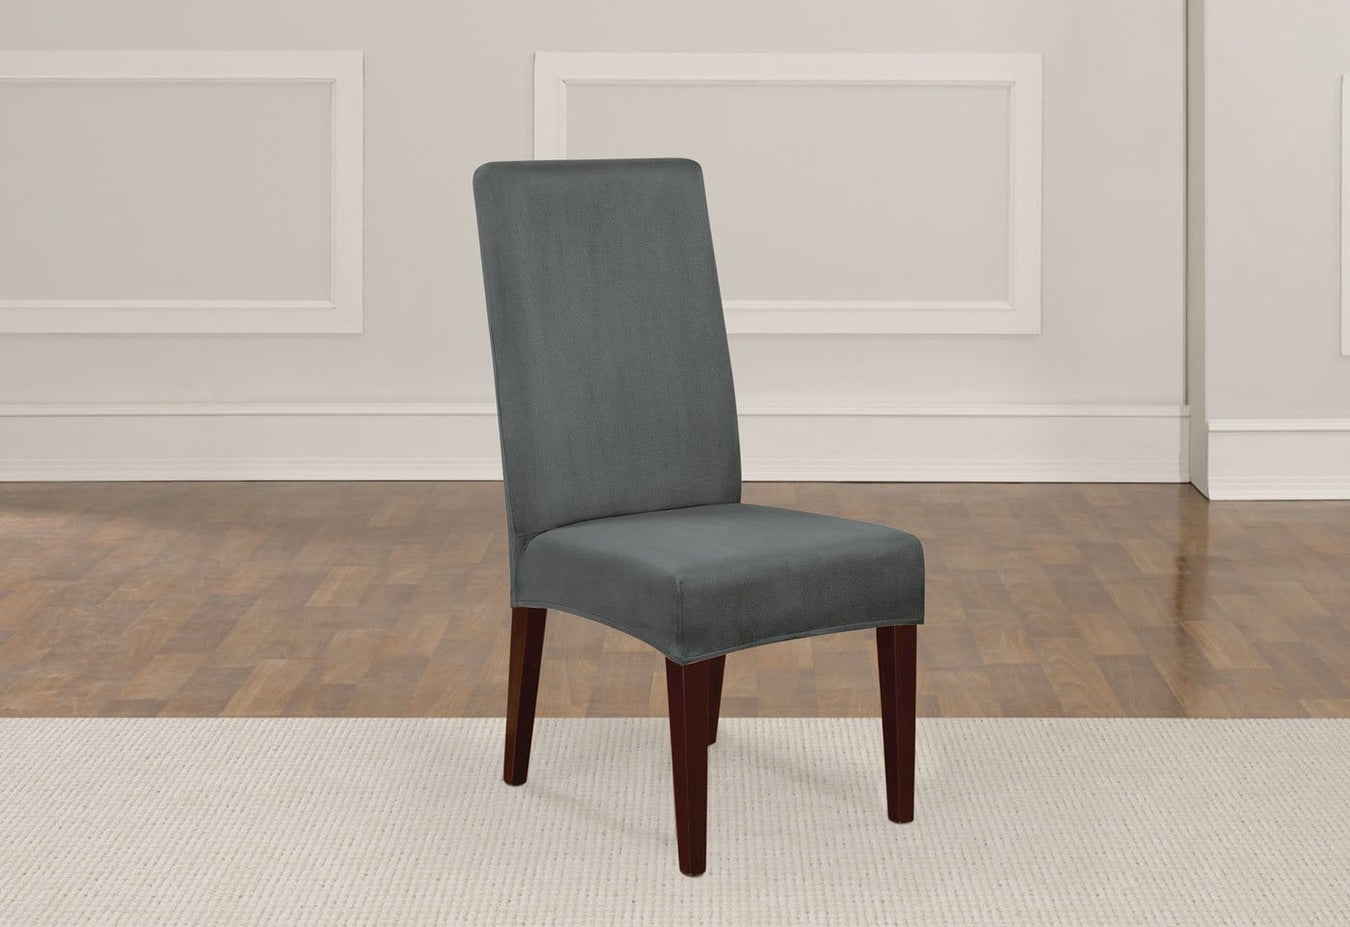 Cool Designer Suede Short Dining Chair Slipcover Surefit Uwap Interior Chair Design Uwaporg